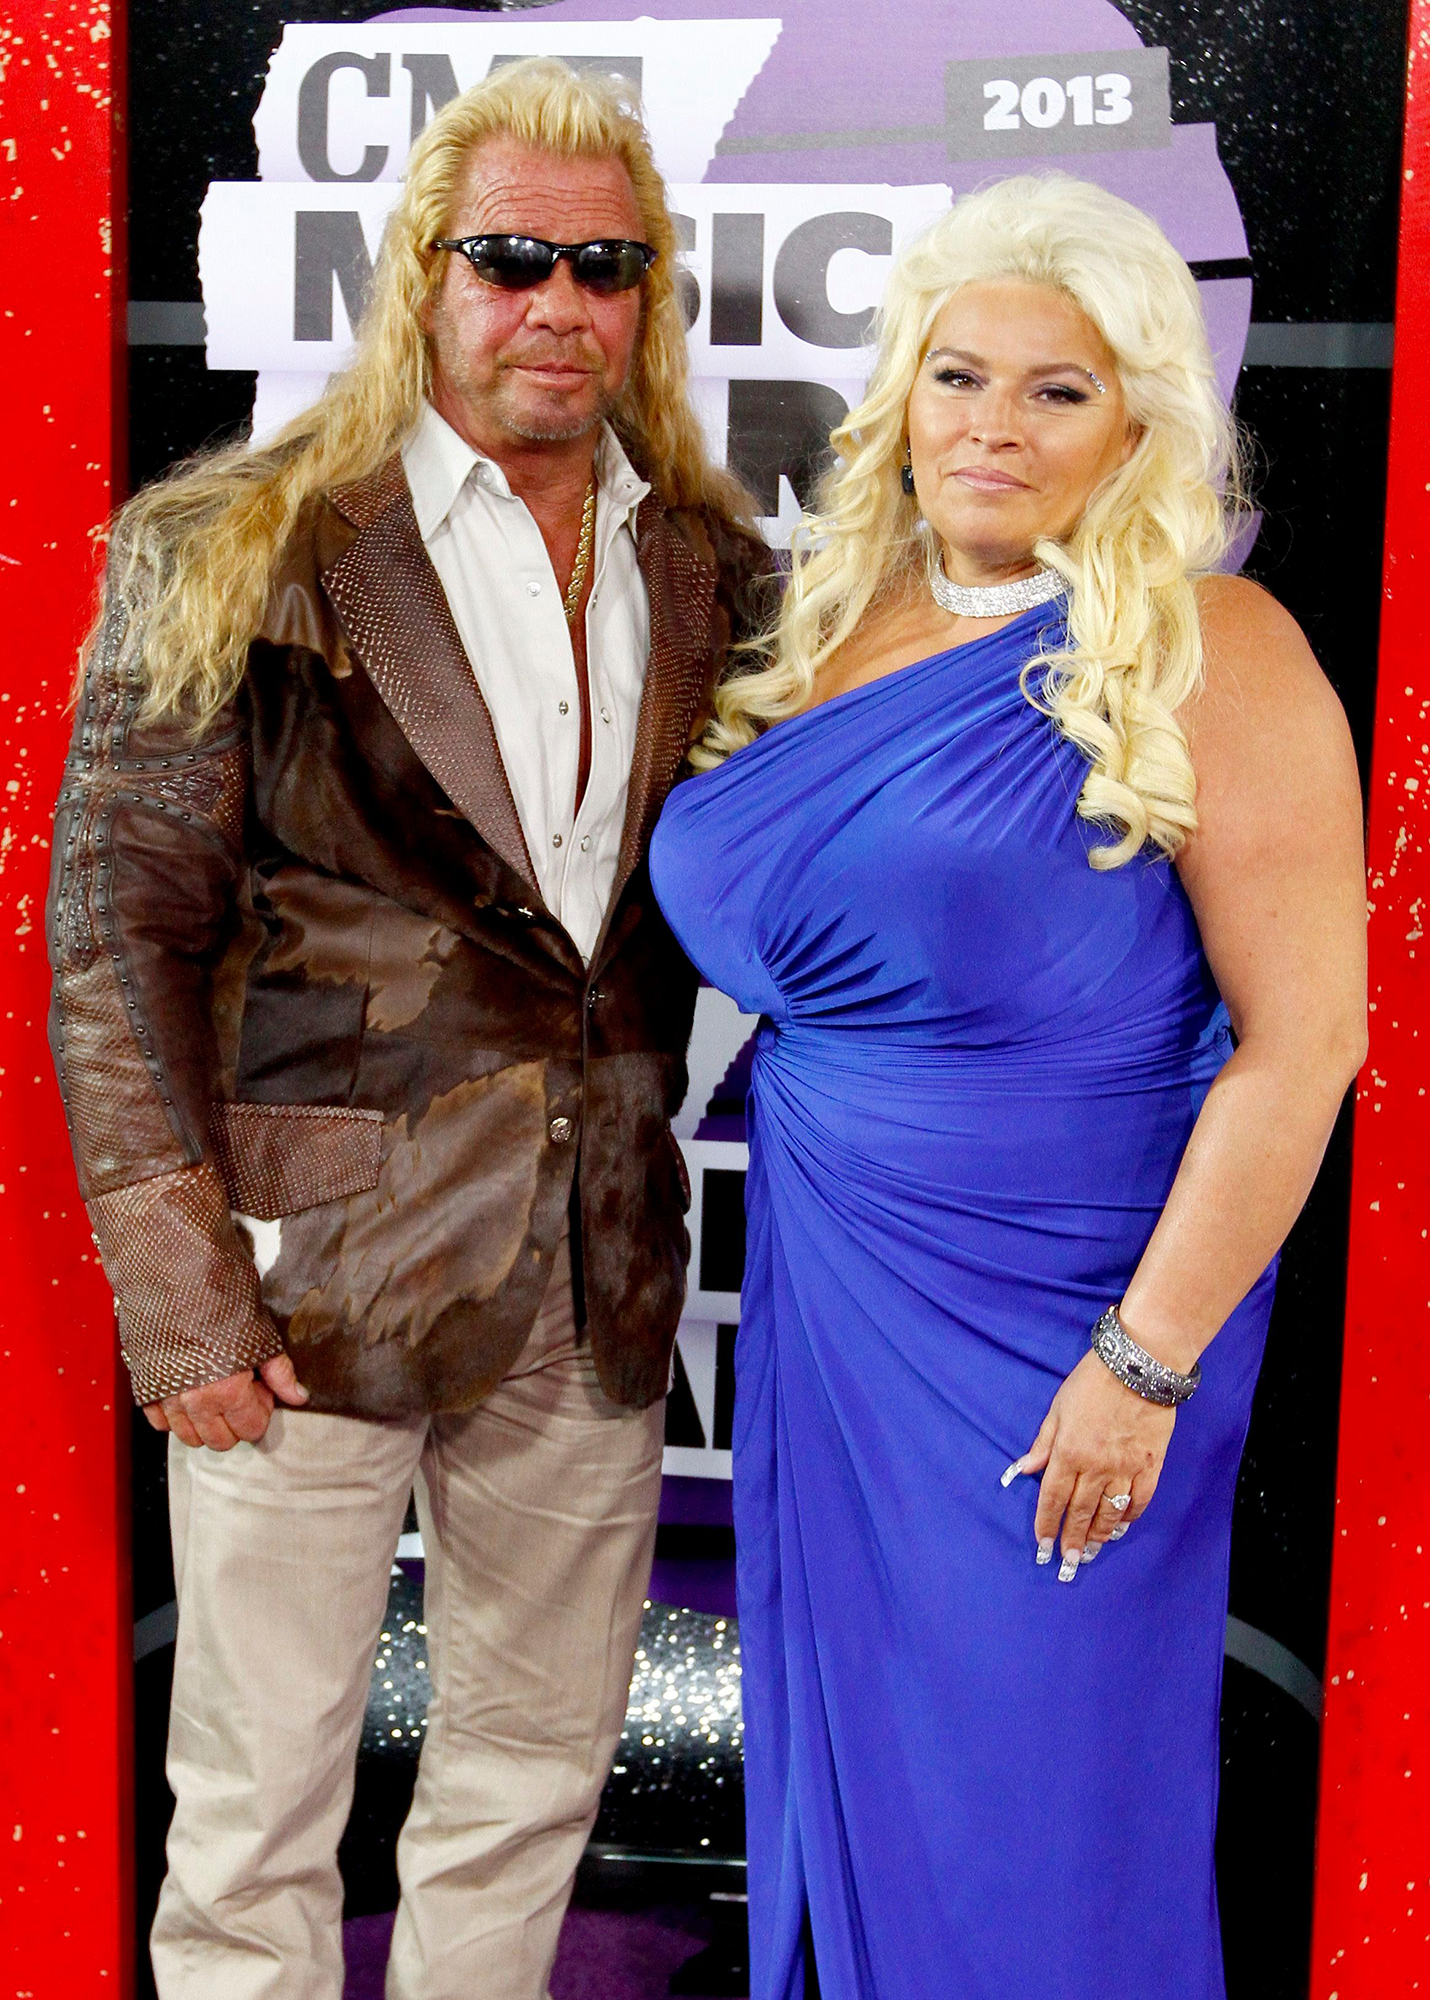 Dog the Bounty Hunter Breaks His Silence After Hospitalization